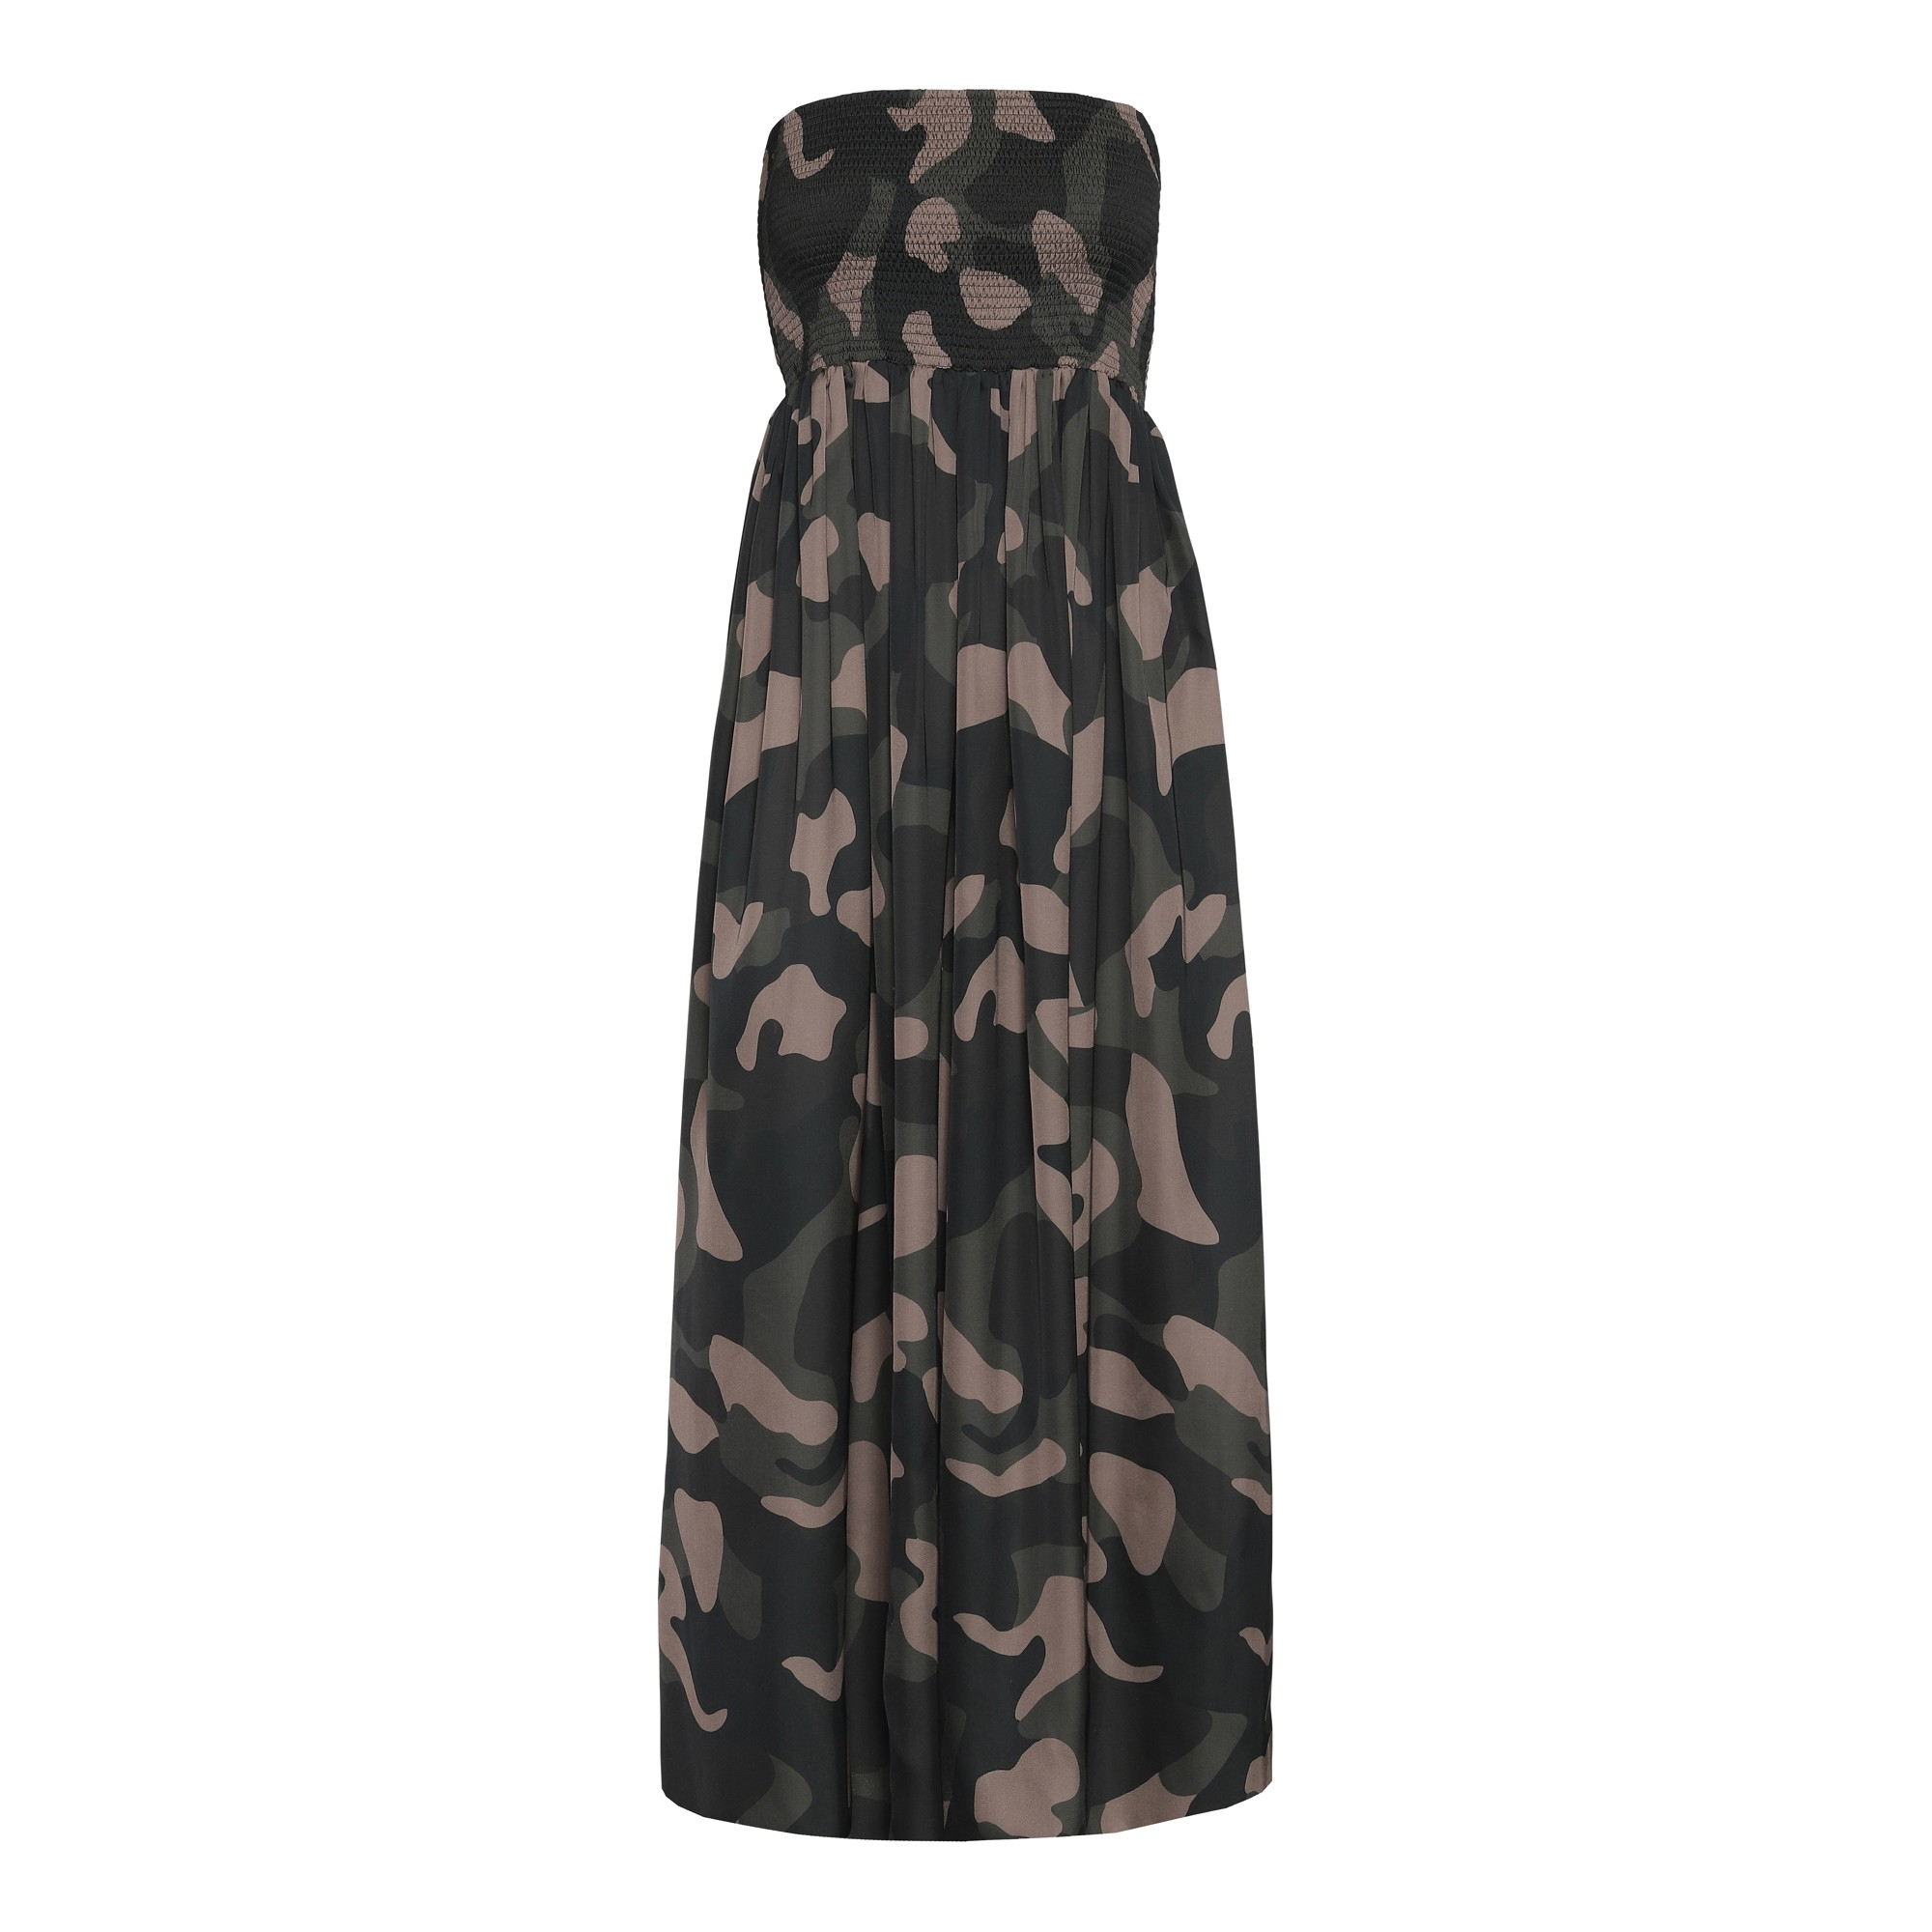 Karmamia IMAGE BY ME Juliette Dress - Camouflage